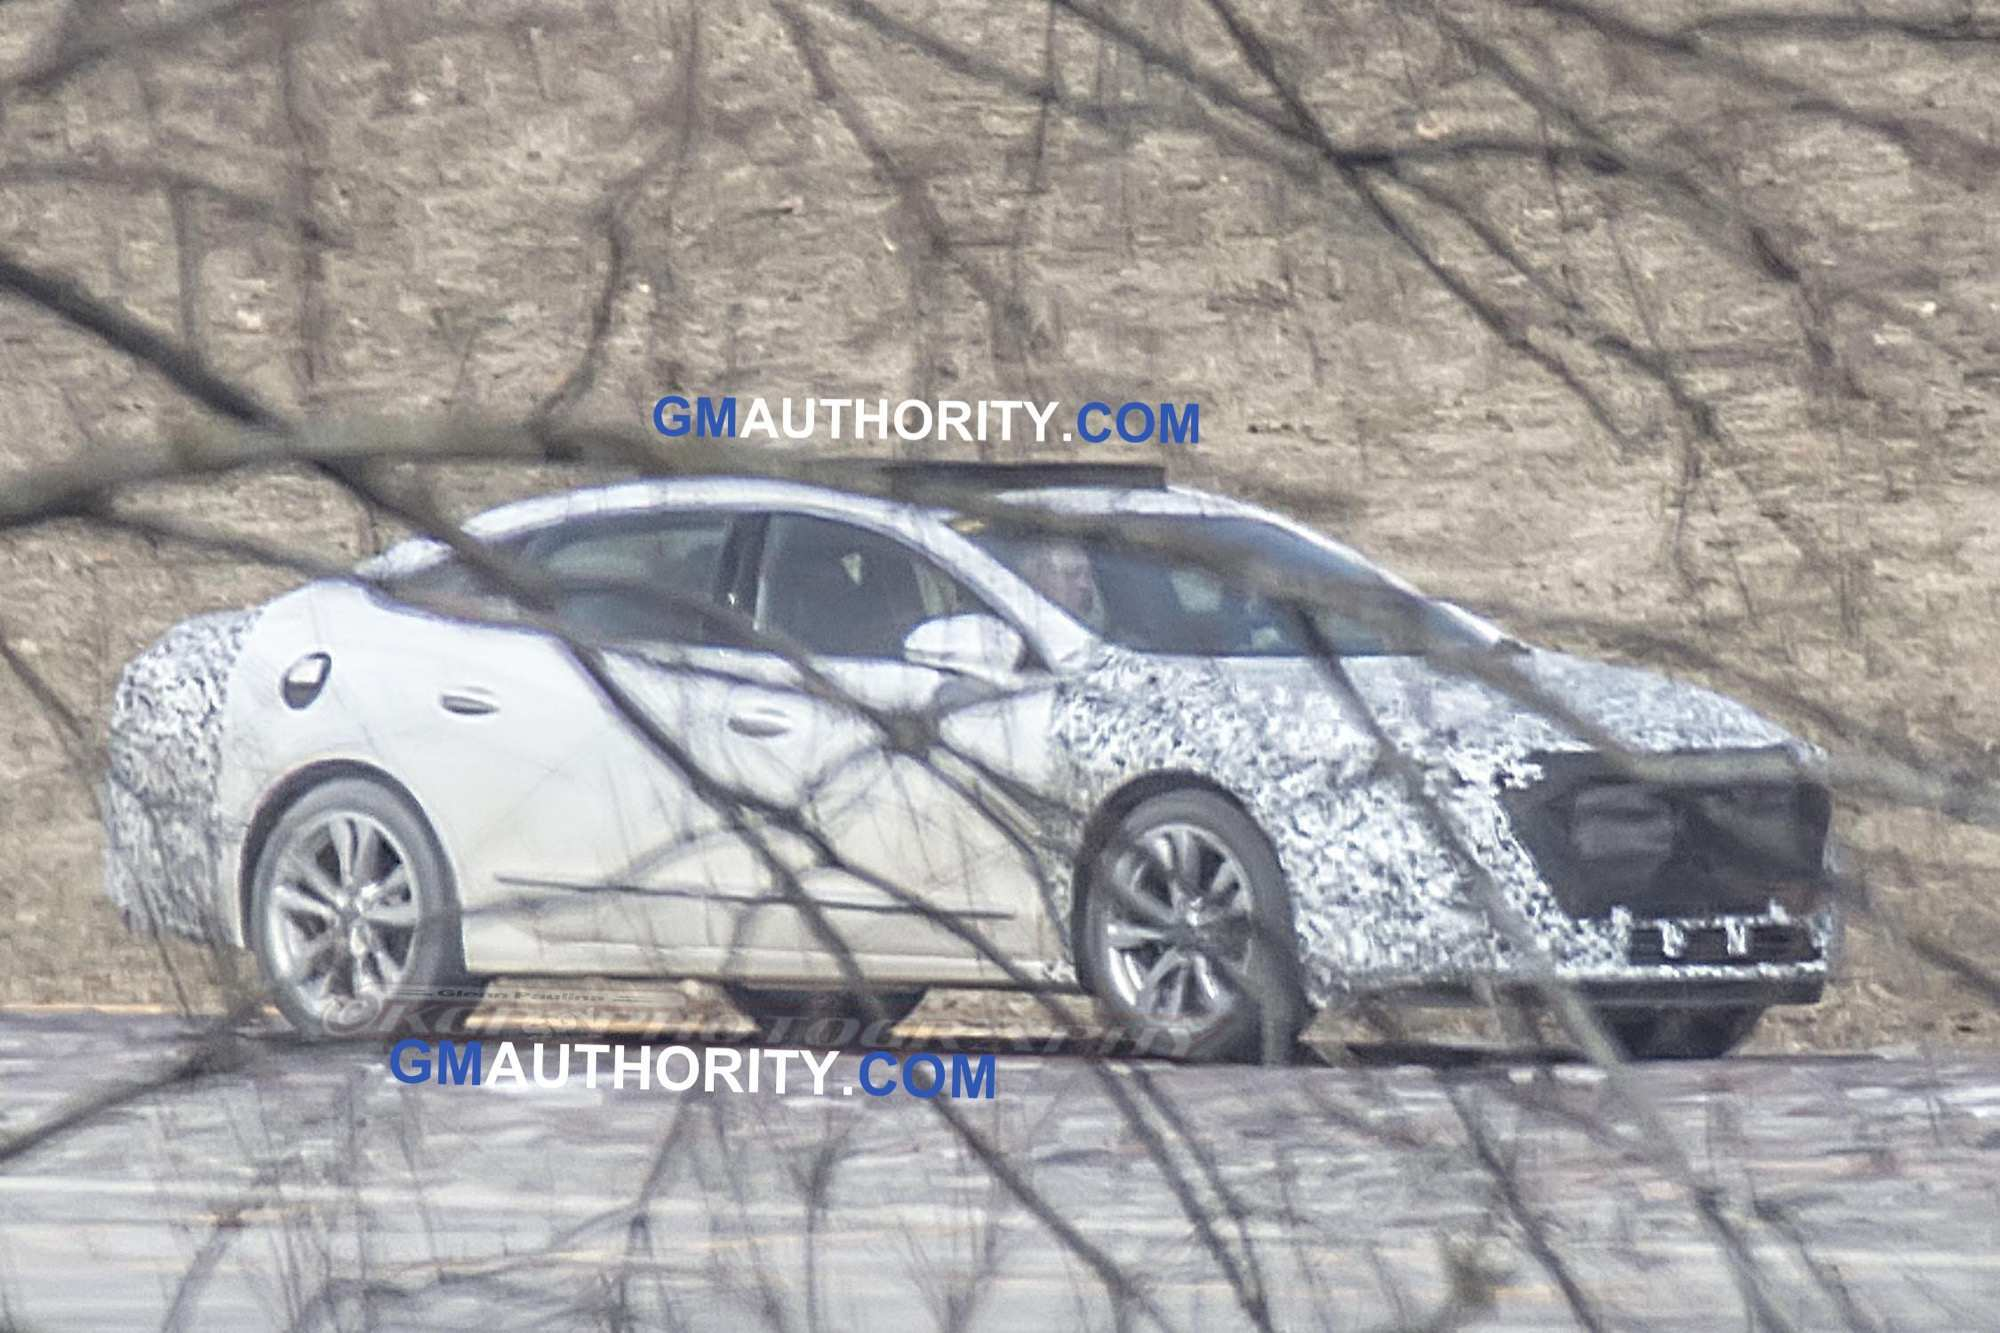 45 Gallery of 2020 Buick Enclave Spy Photos Release with 2020 Buick Enclave Spy Photos